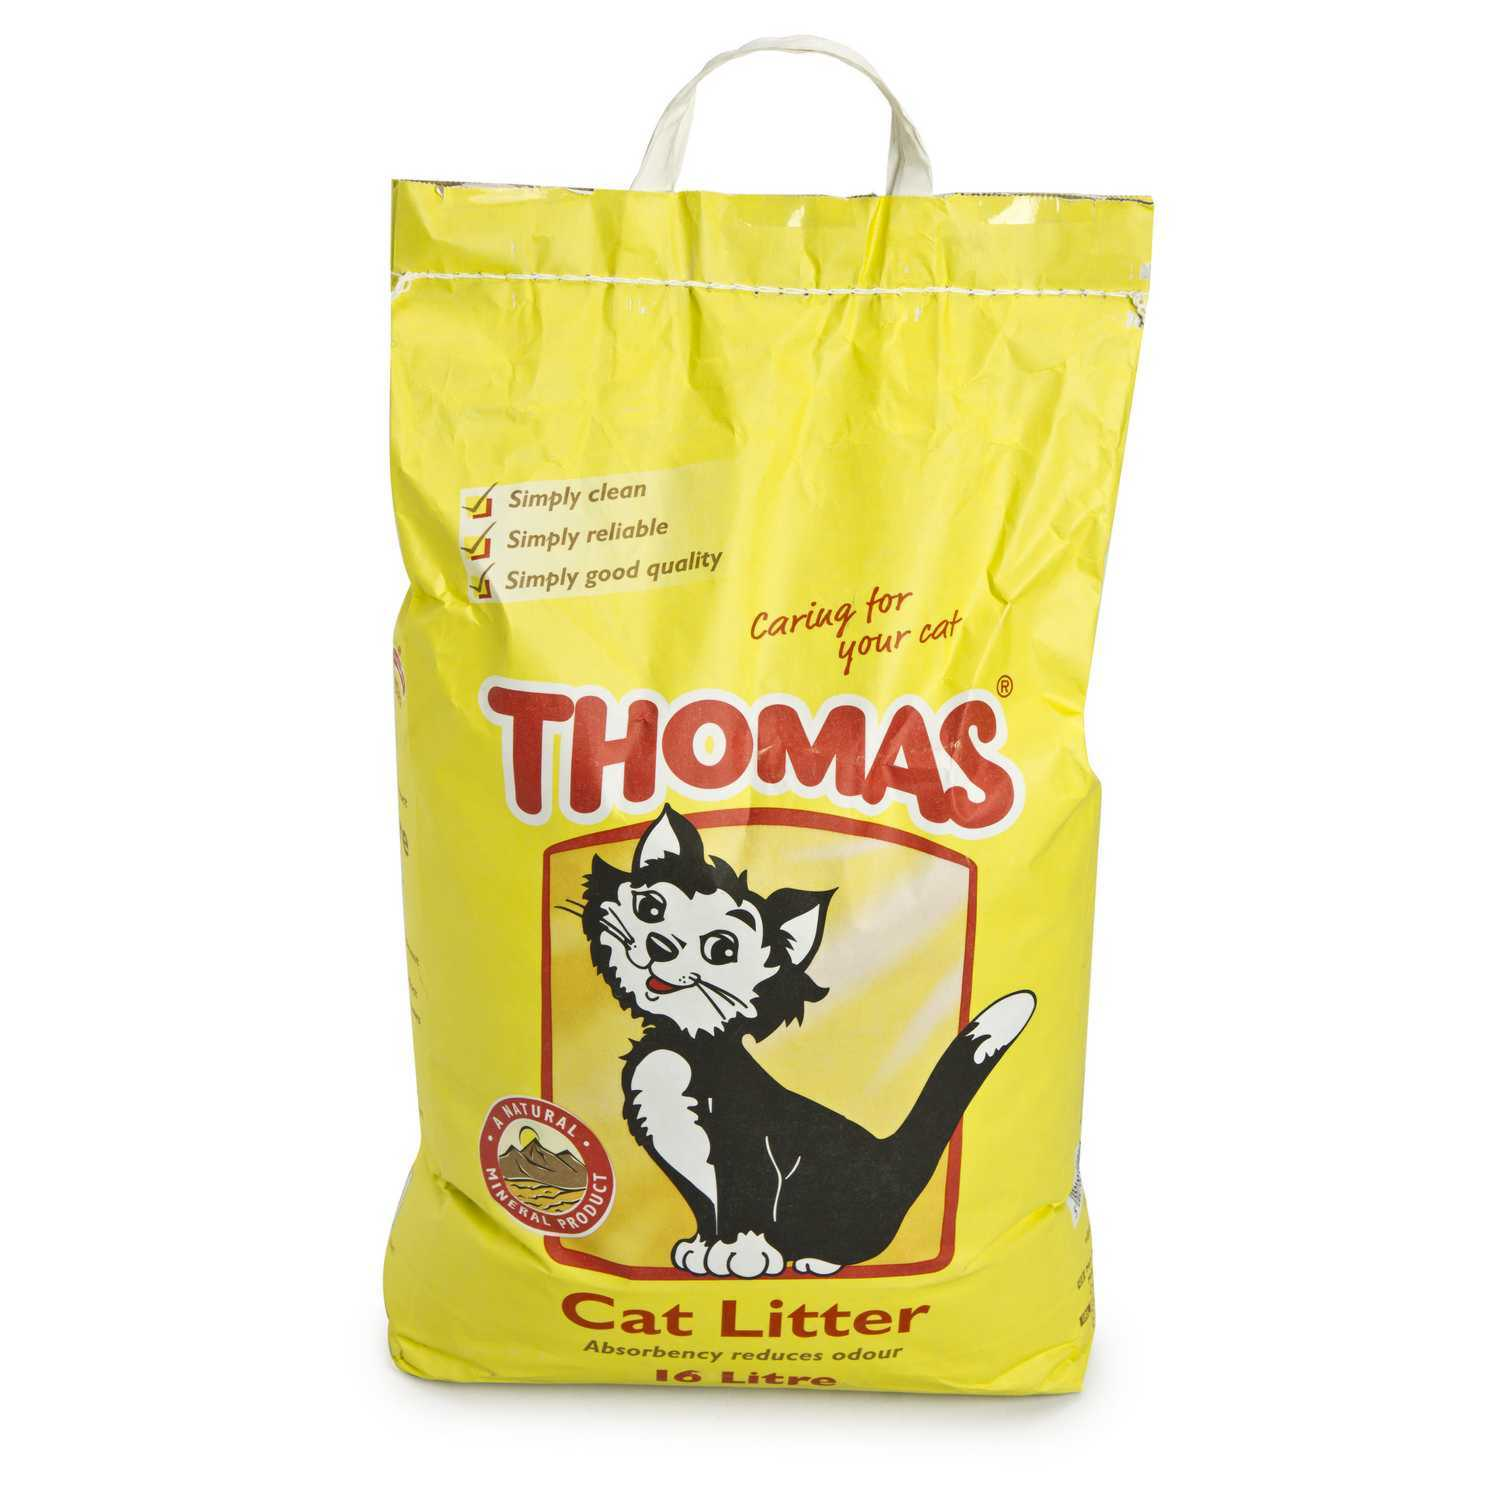 Thomas Cat Litter - Pet Accessories - Pet Store - Pet supplies